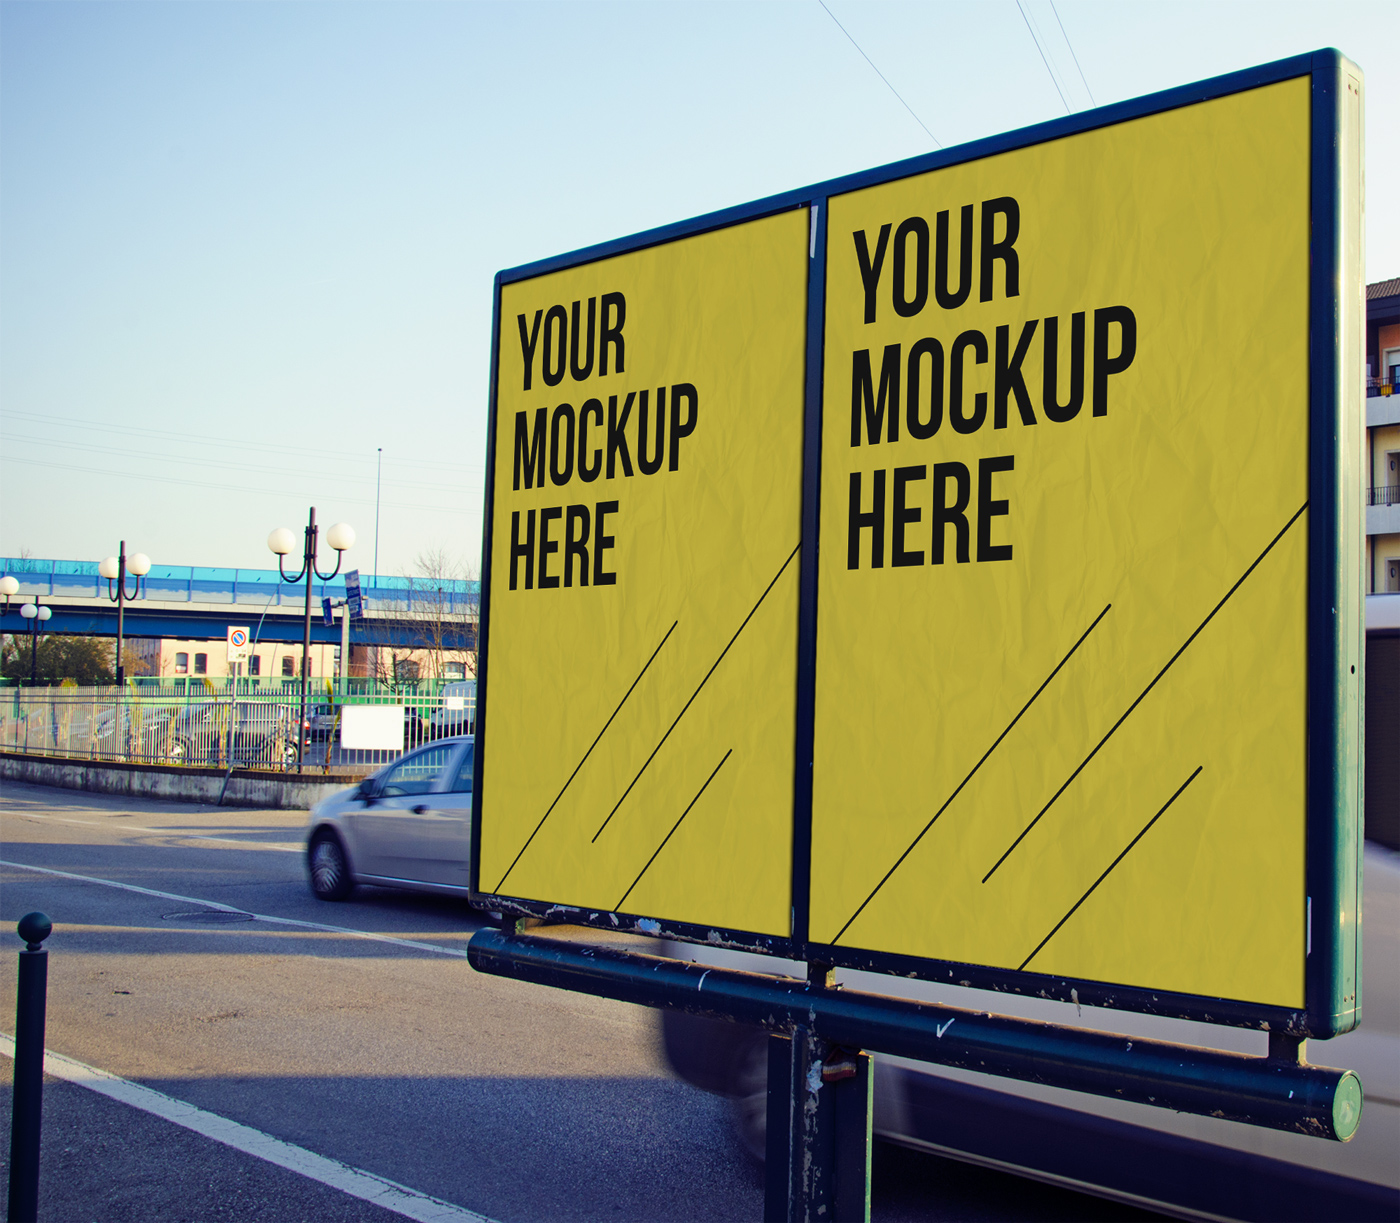 Store Banne Vehicule Free Advertising Mockup On Behance